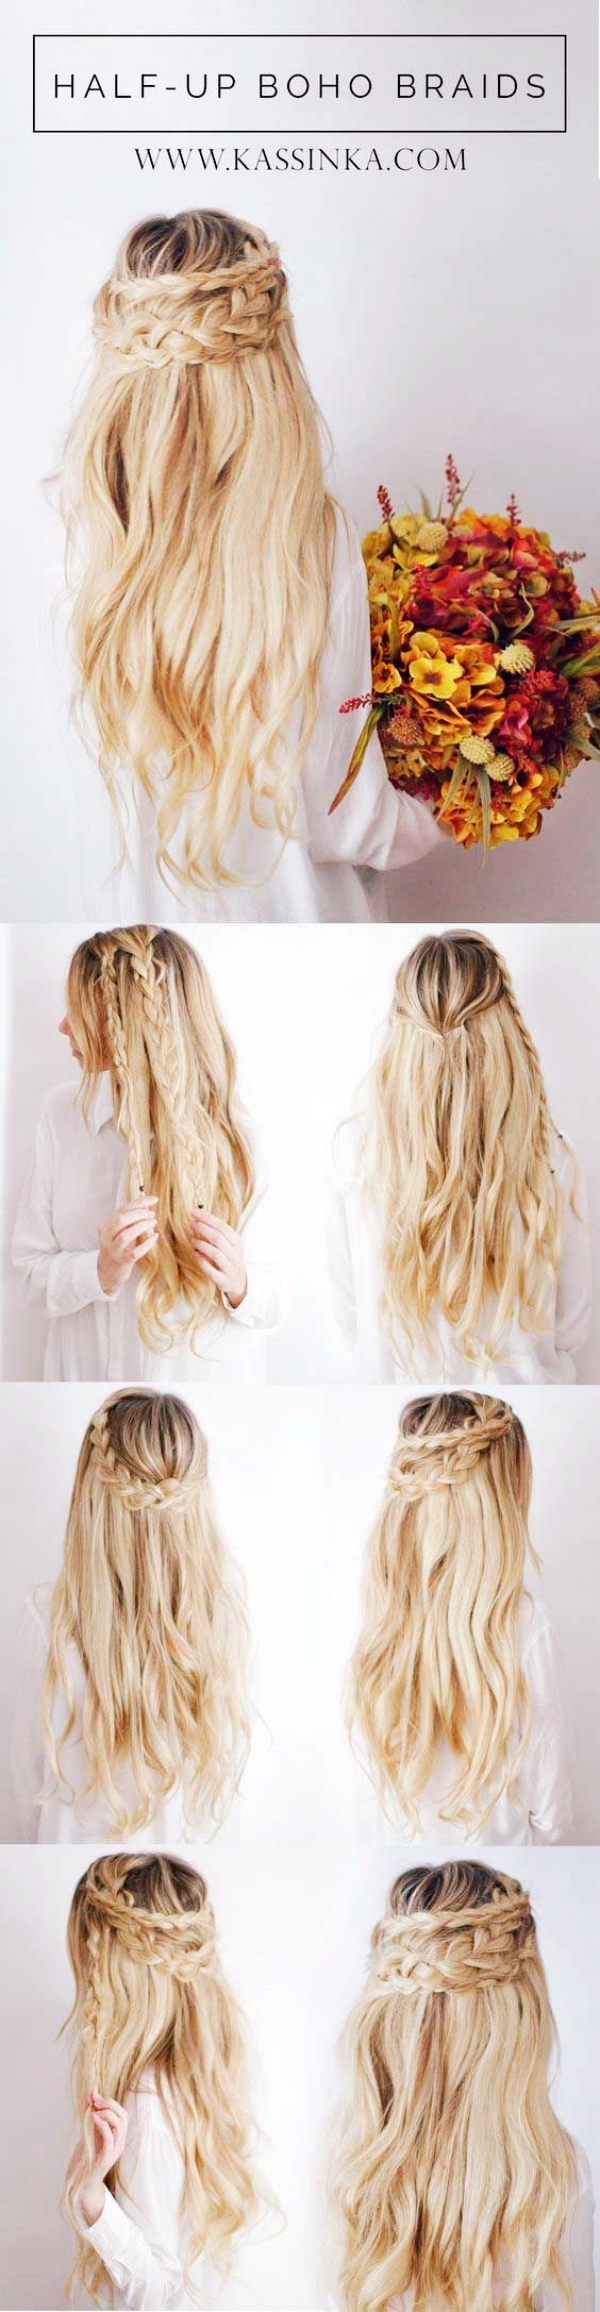 Delightful Greek Goddess Half Up Half Down Hairstyles